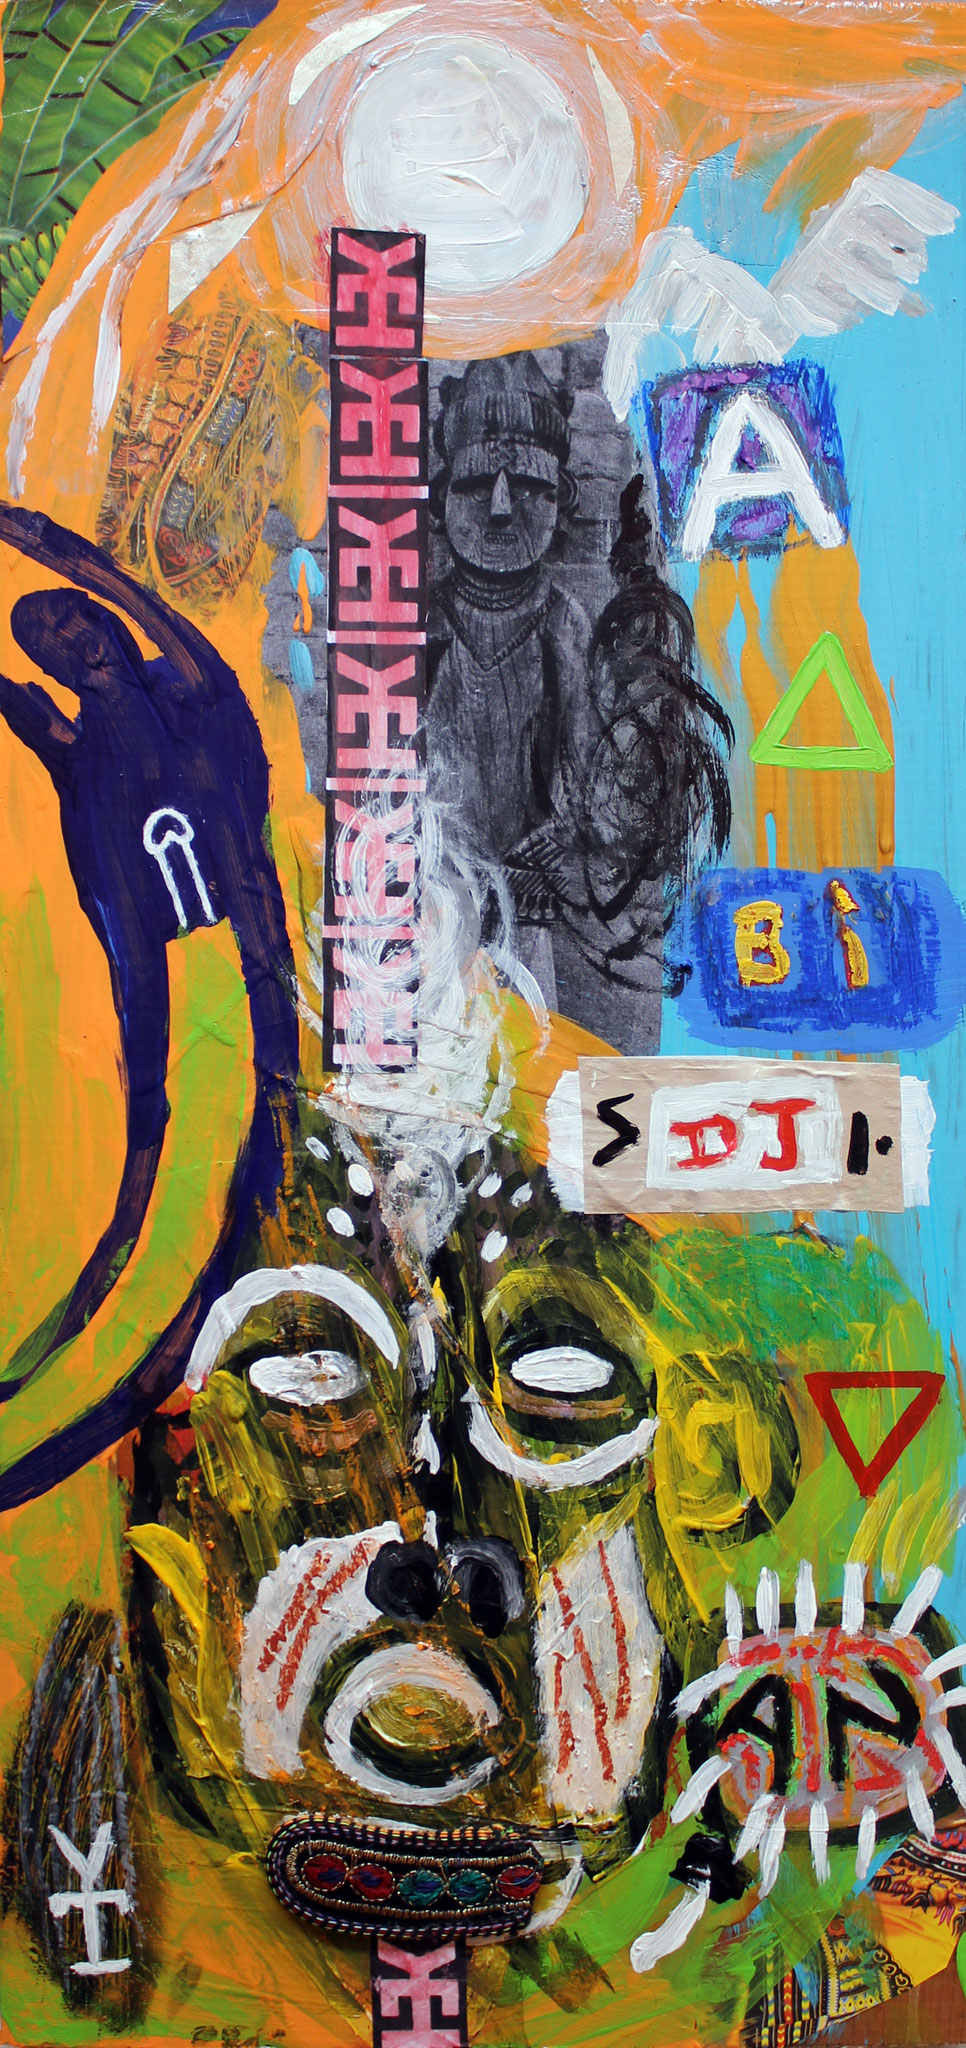 ABIDJAN- Acrylic and collage on wood- 11x23.5 inch - 2015